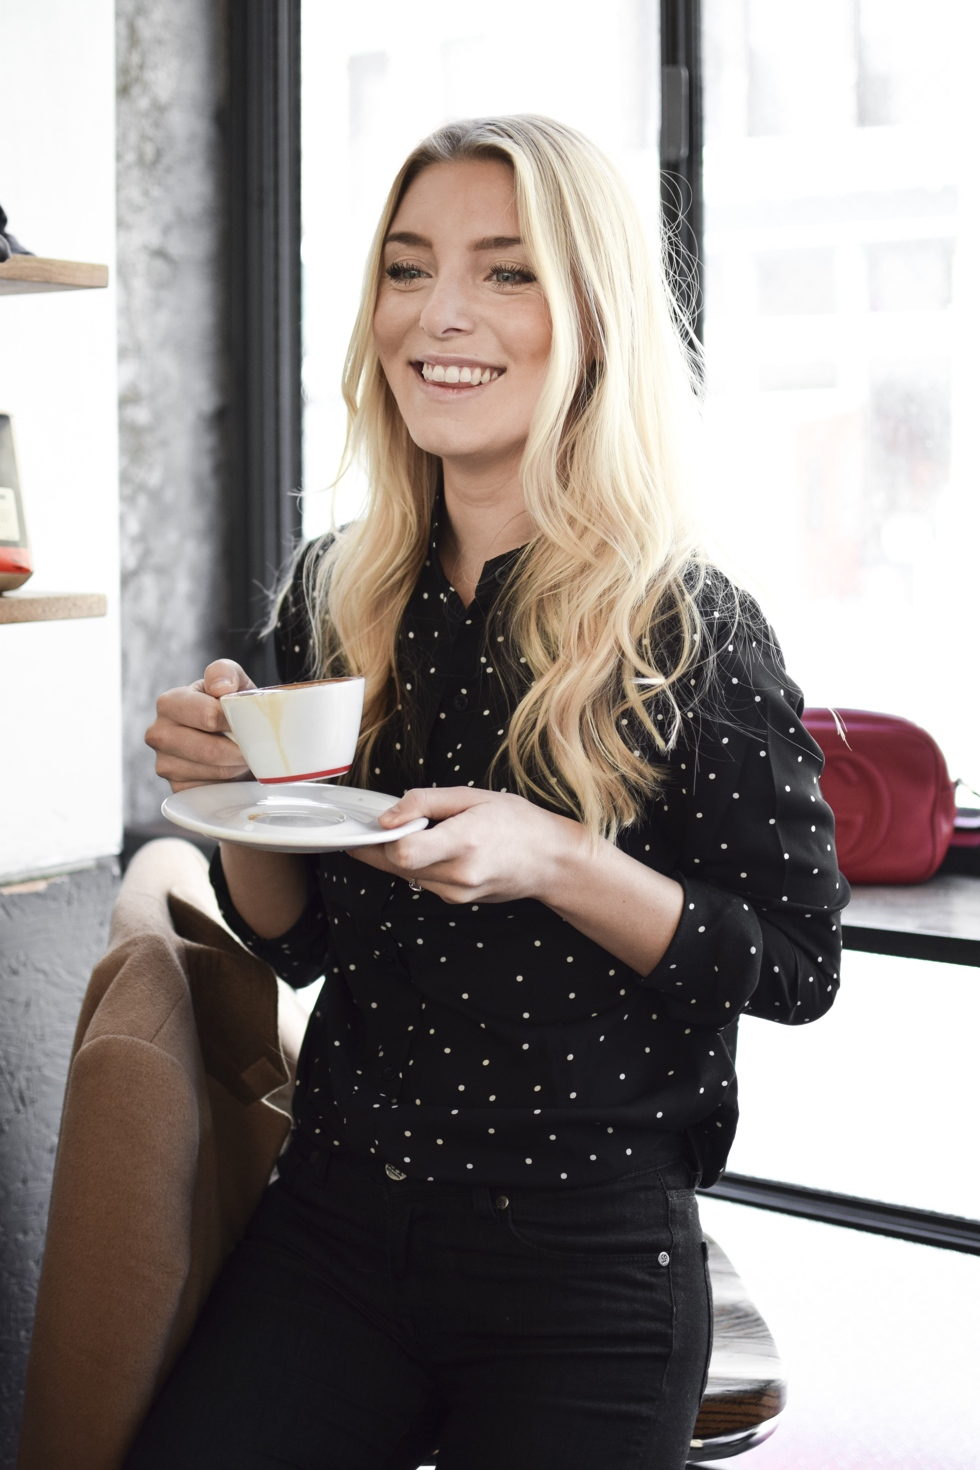 sanne_outfit_gasoline_alley_coffee_new_york_7